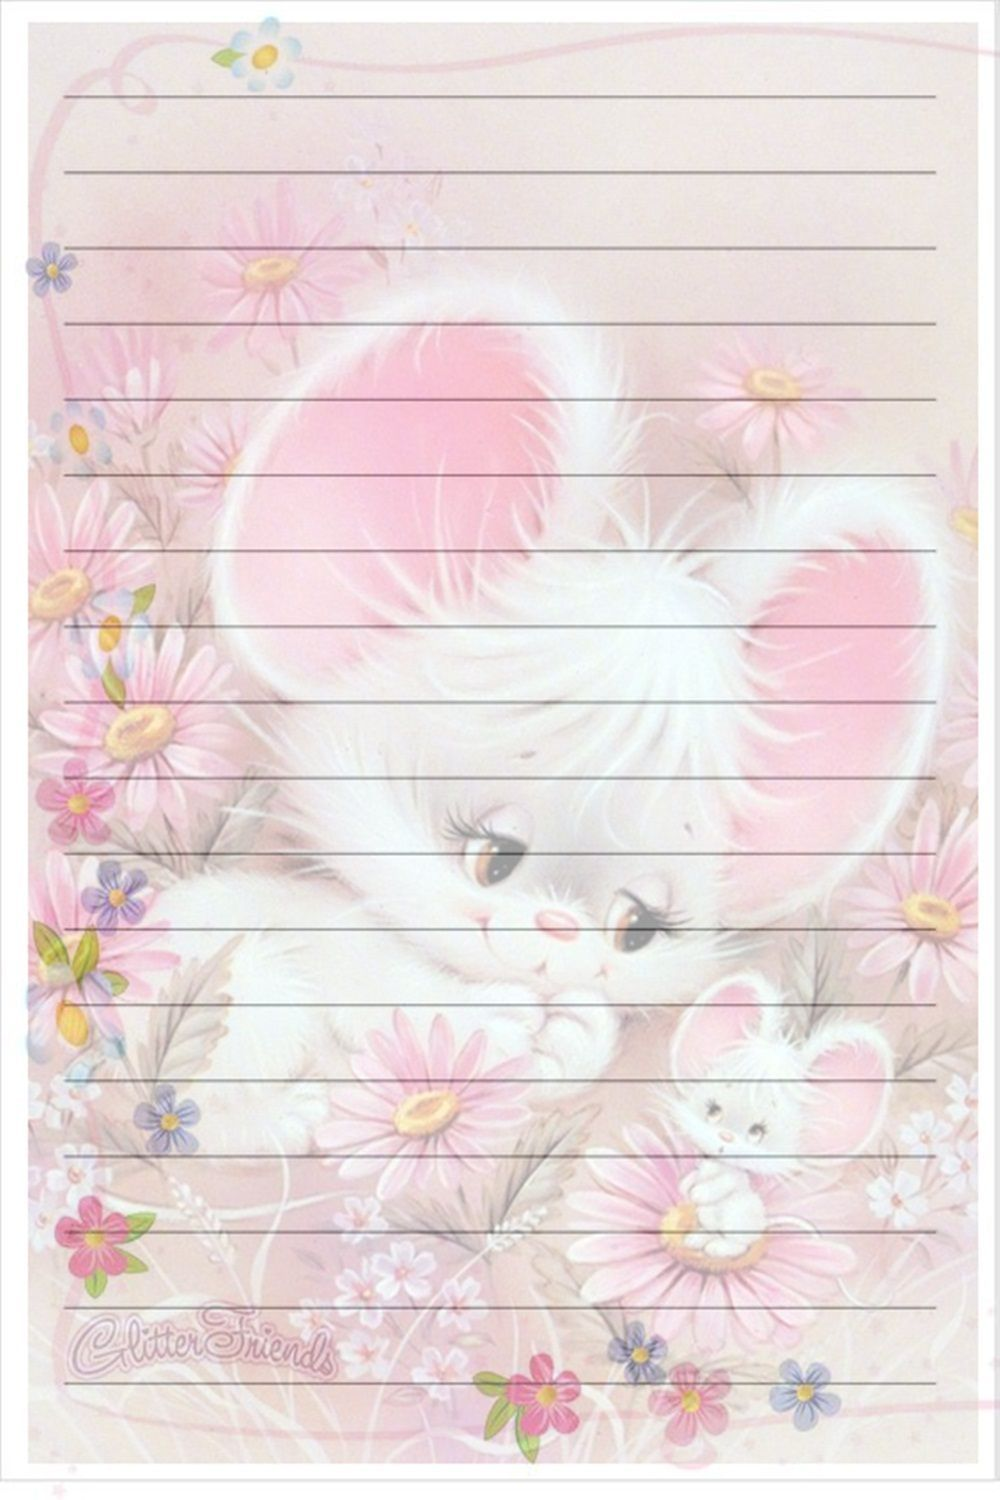 4ddfc029dcbec0edb0a82ce848403228 Jpg 1000 1500 Free Printable Stationery Printable Lined Paper Letter Paper